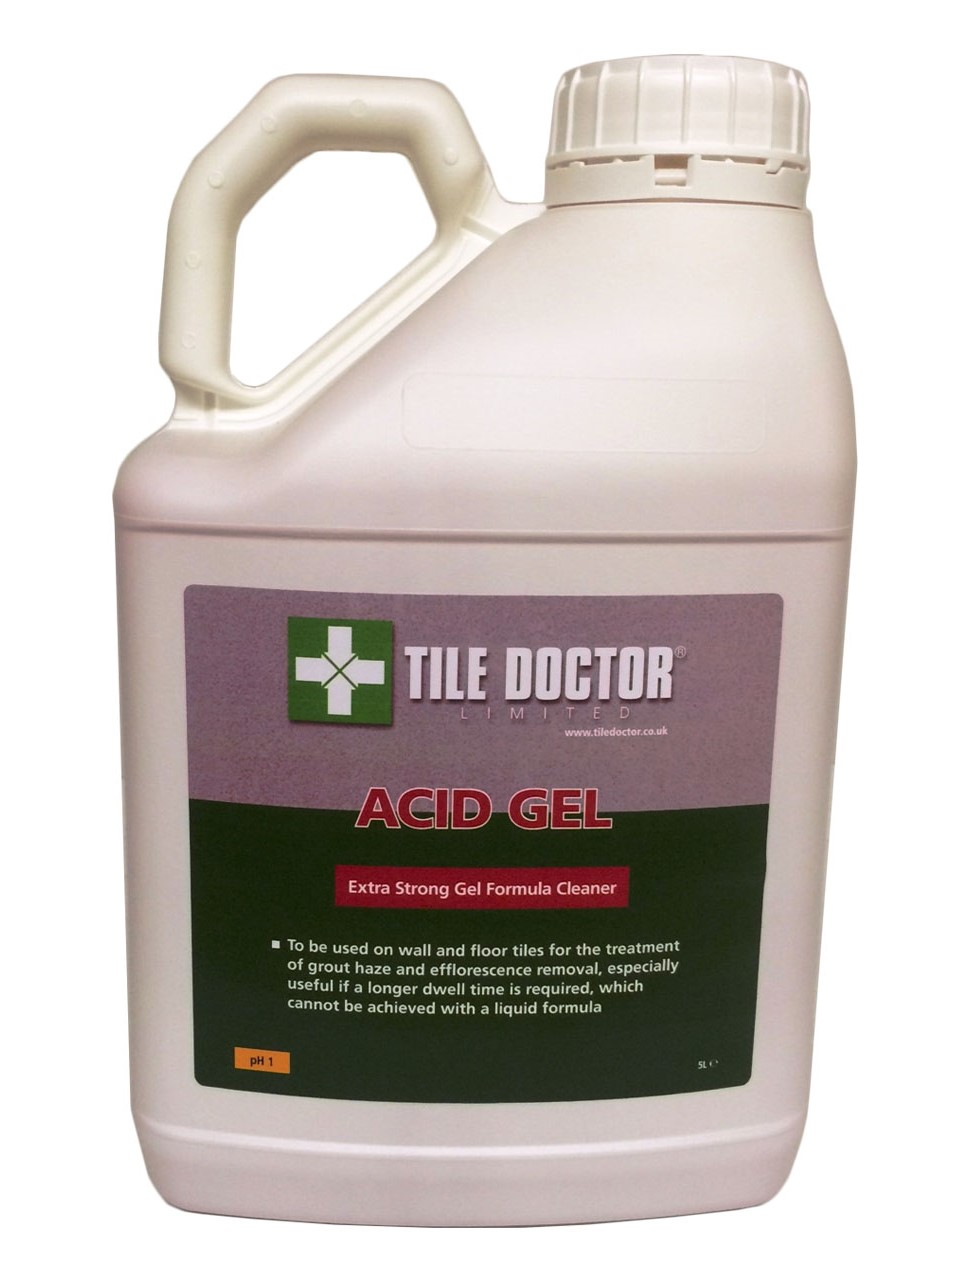 Tile Doctor Acid Gel 5 Litre